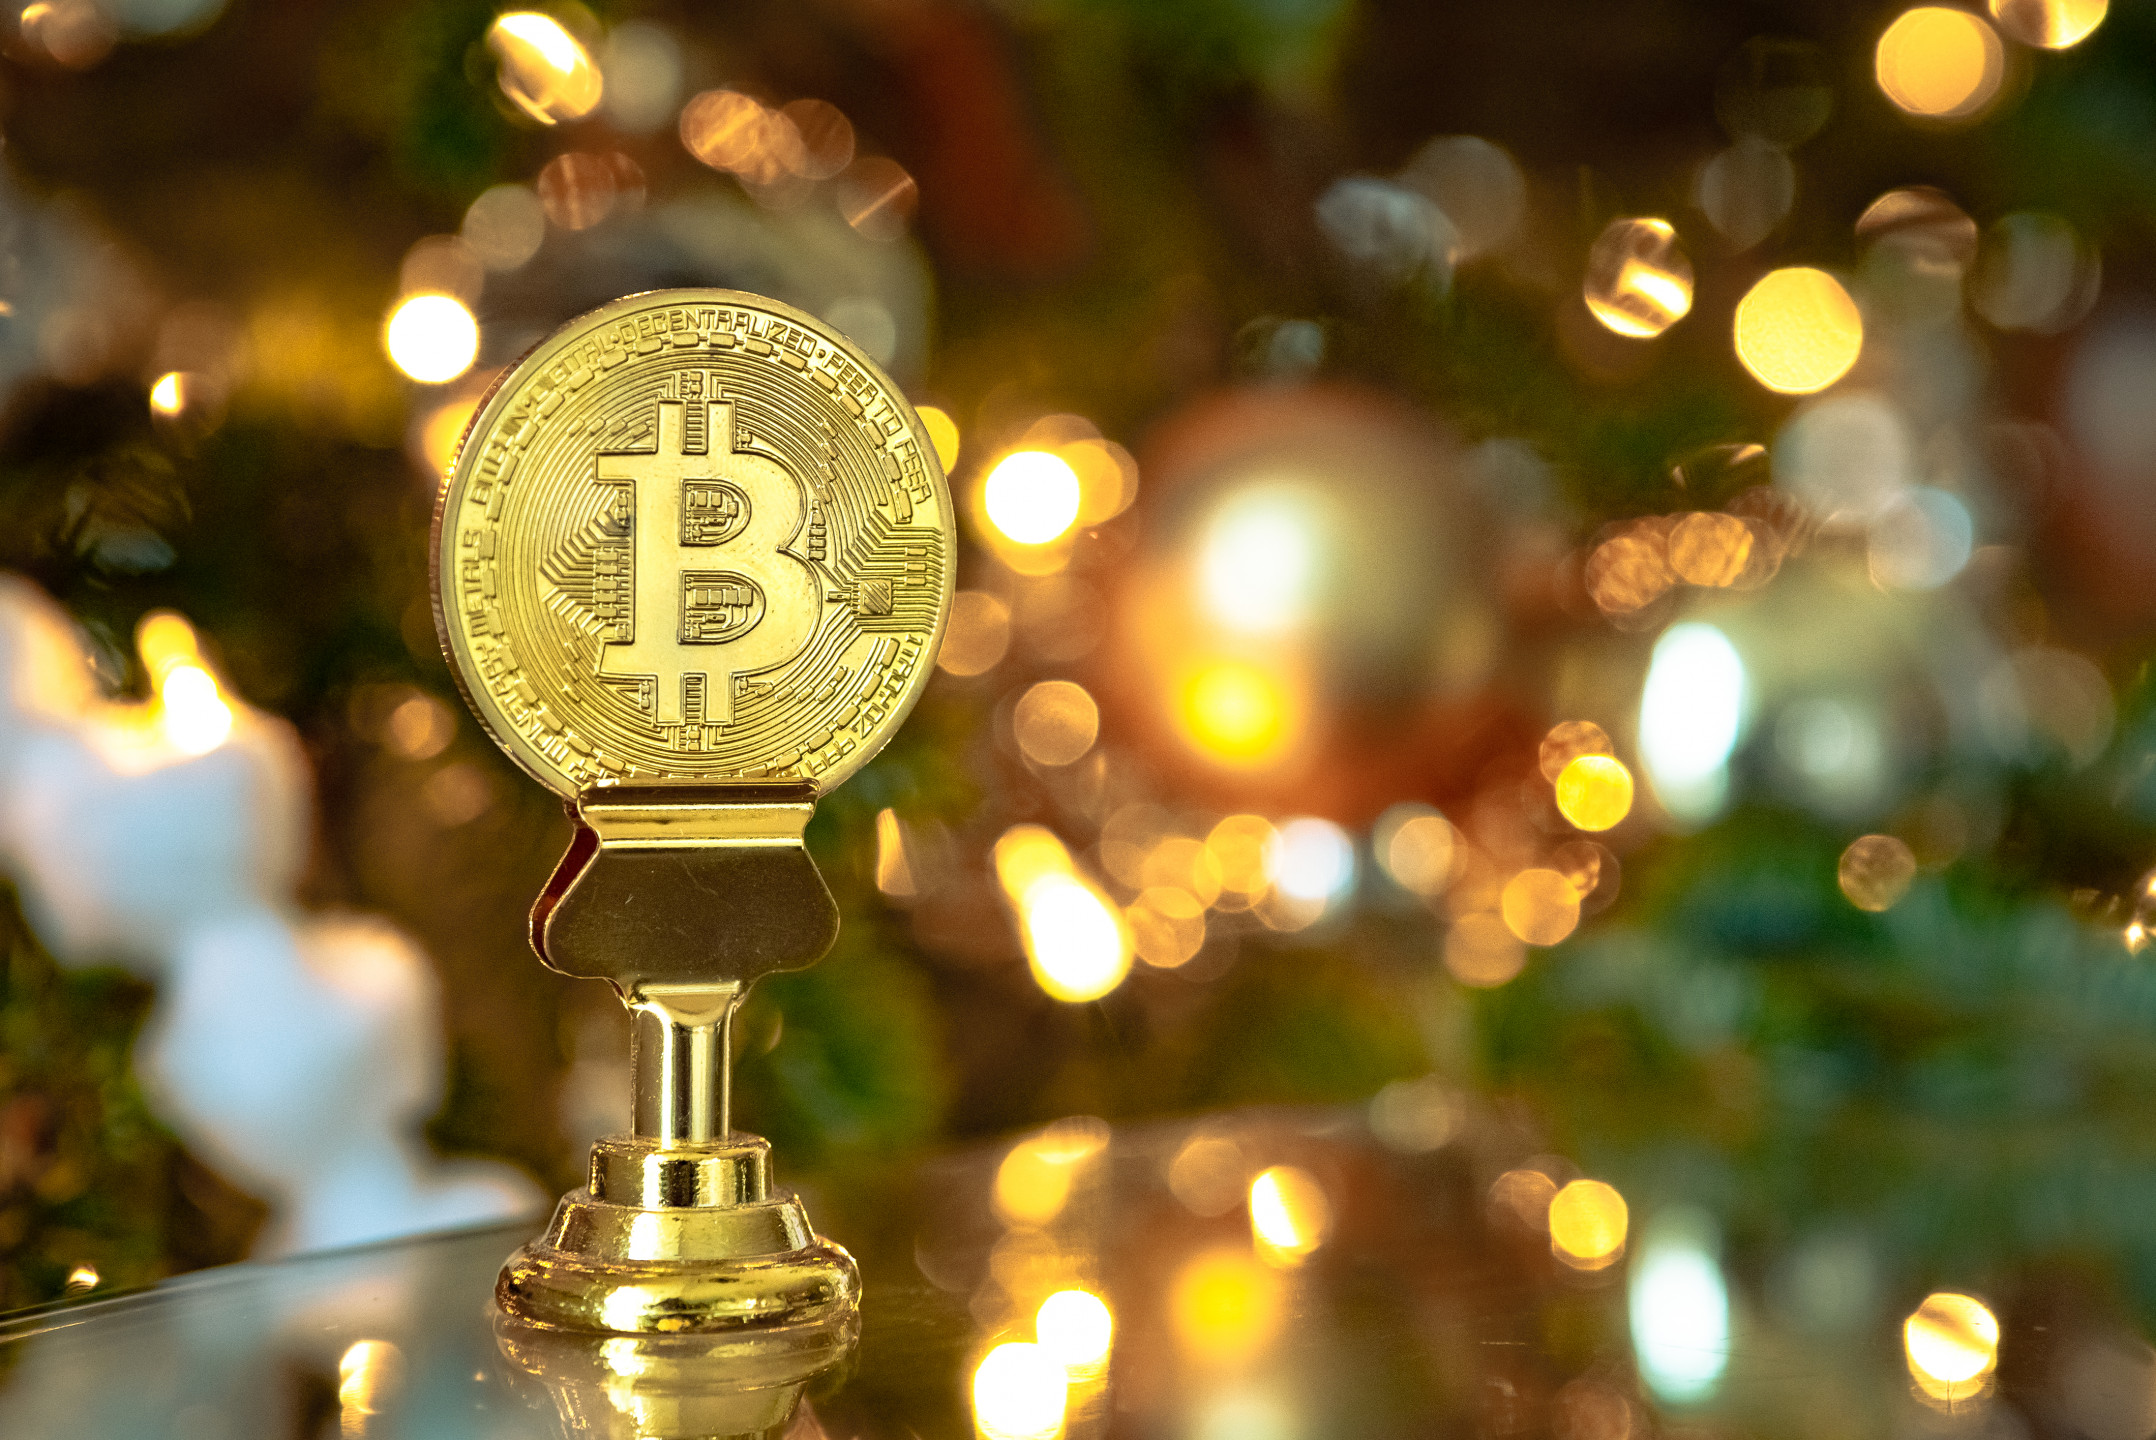 Why Bitcoin jumped today above $4800 mark